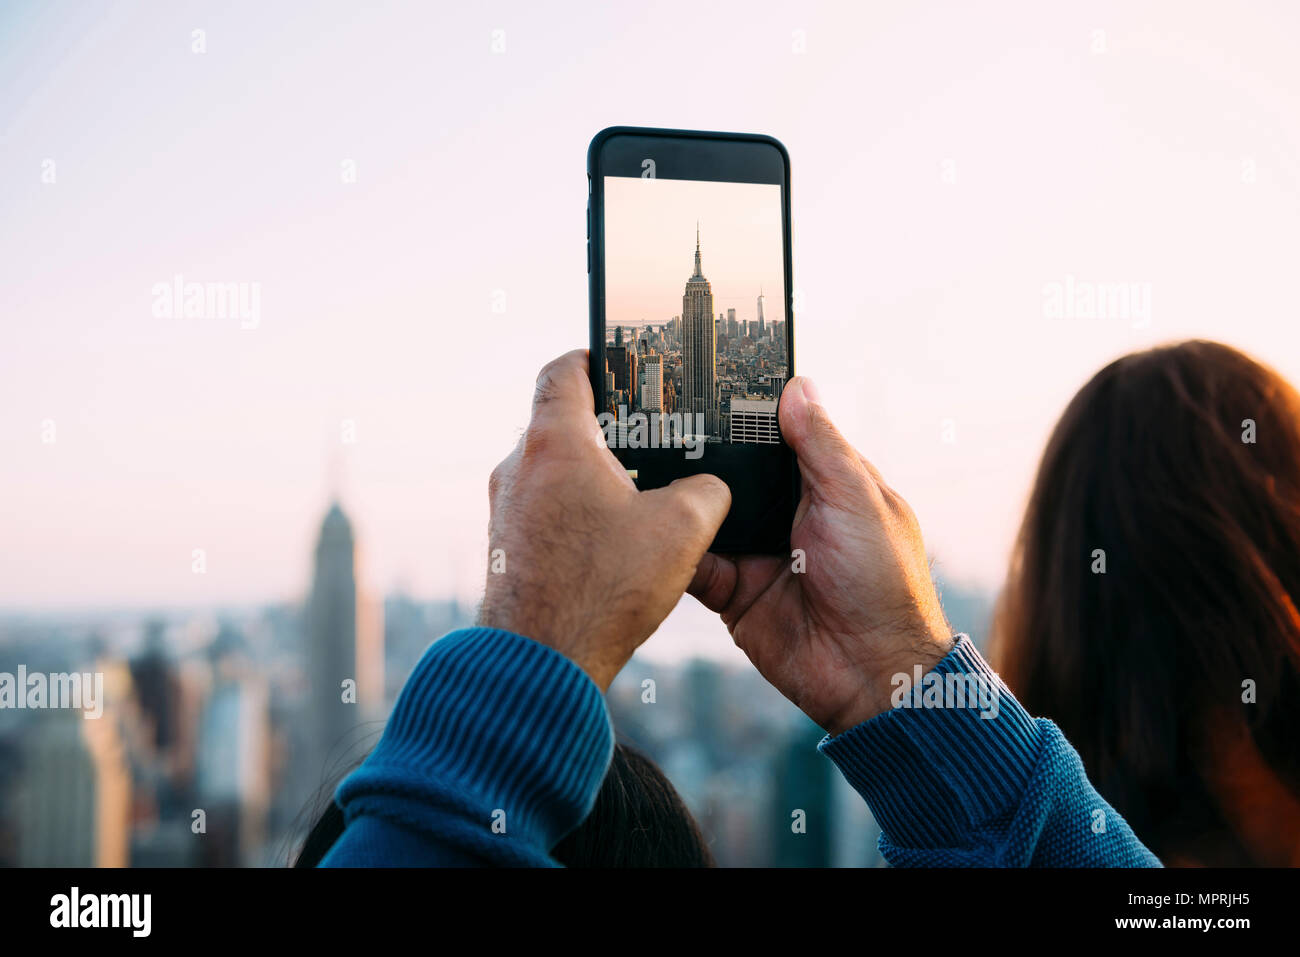 USA, New York City, man's hands taking a photo of Empire State Building with smartphone - Stock Image